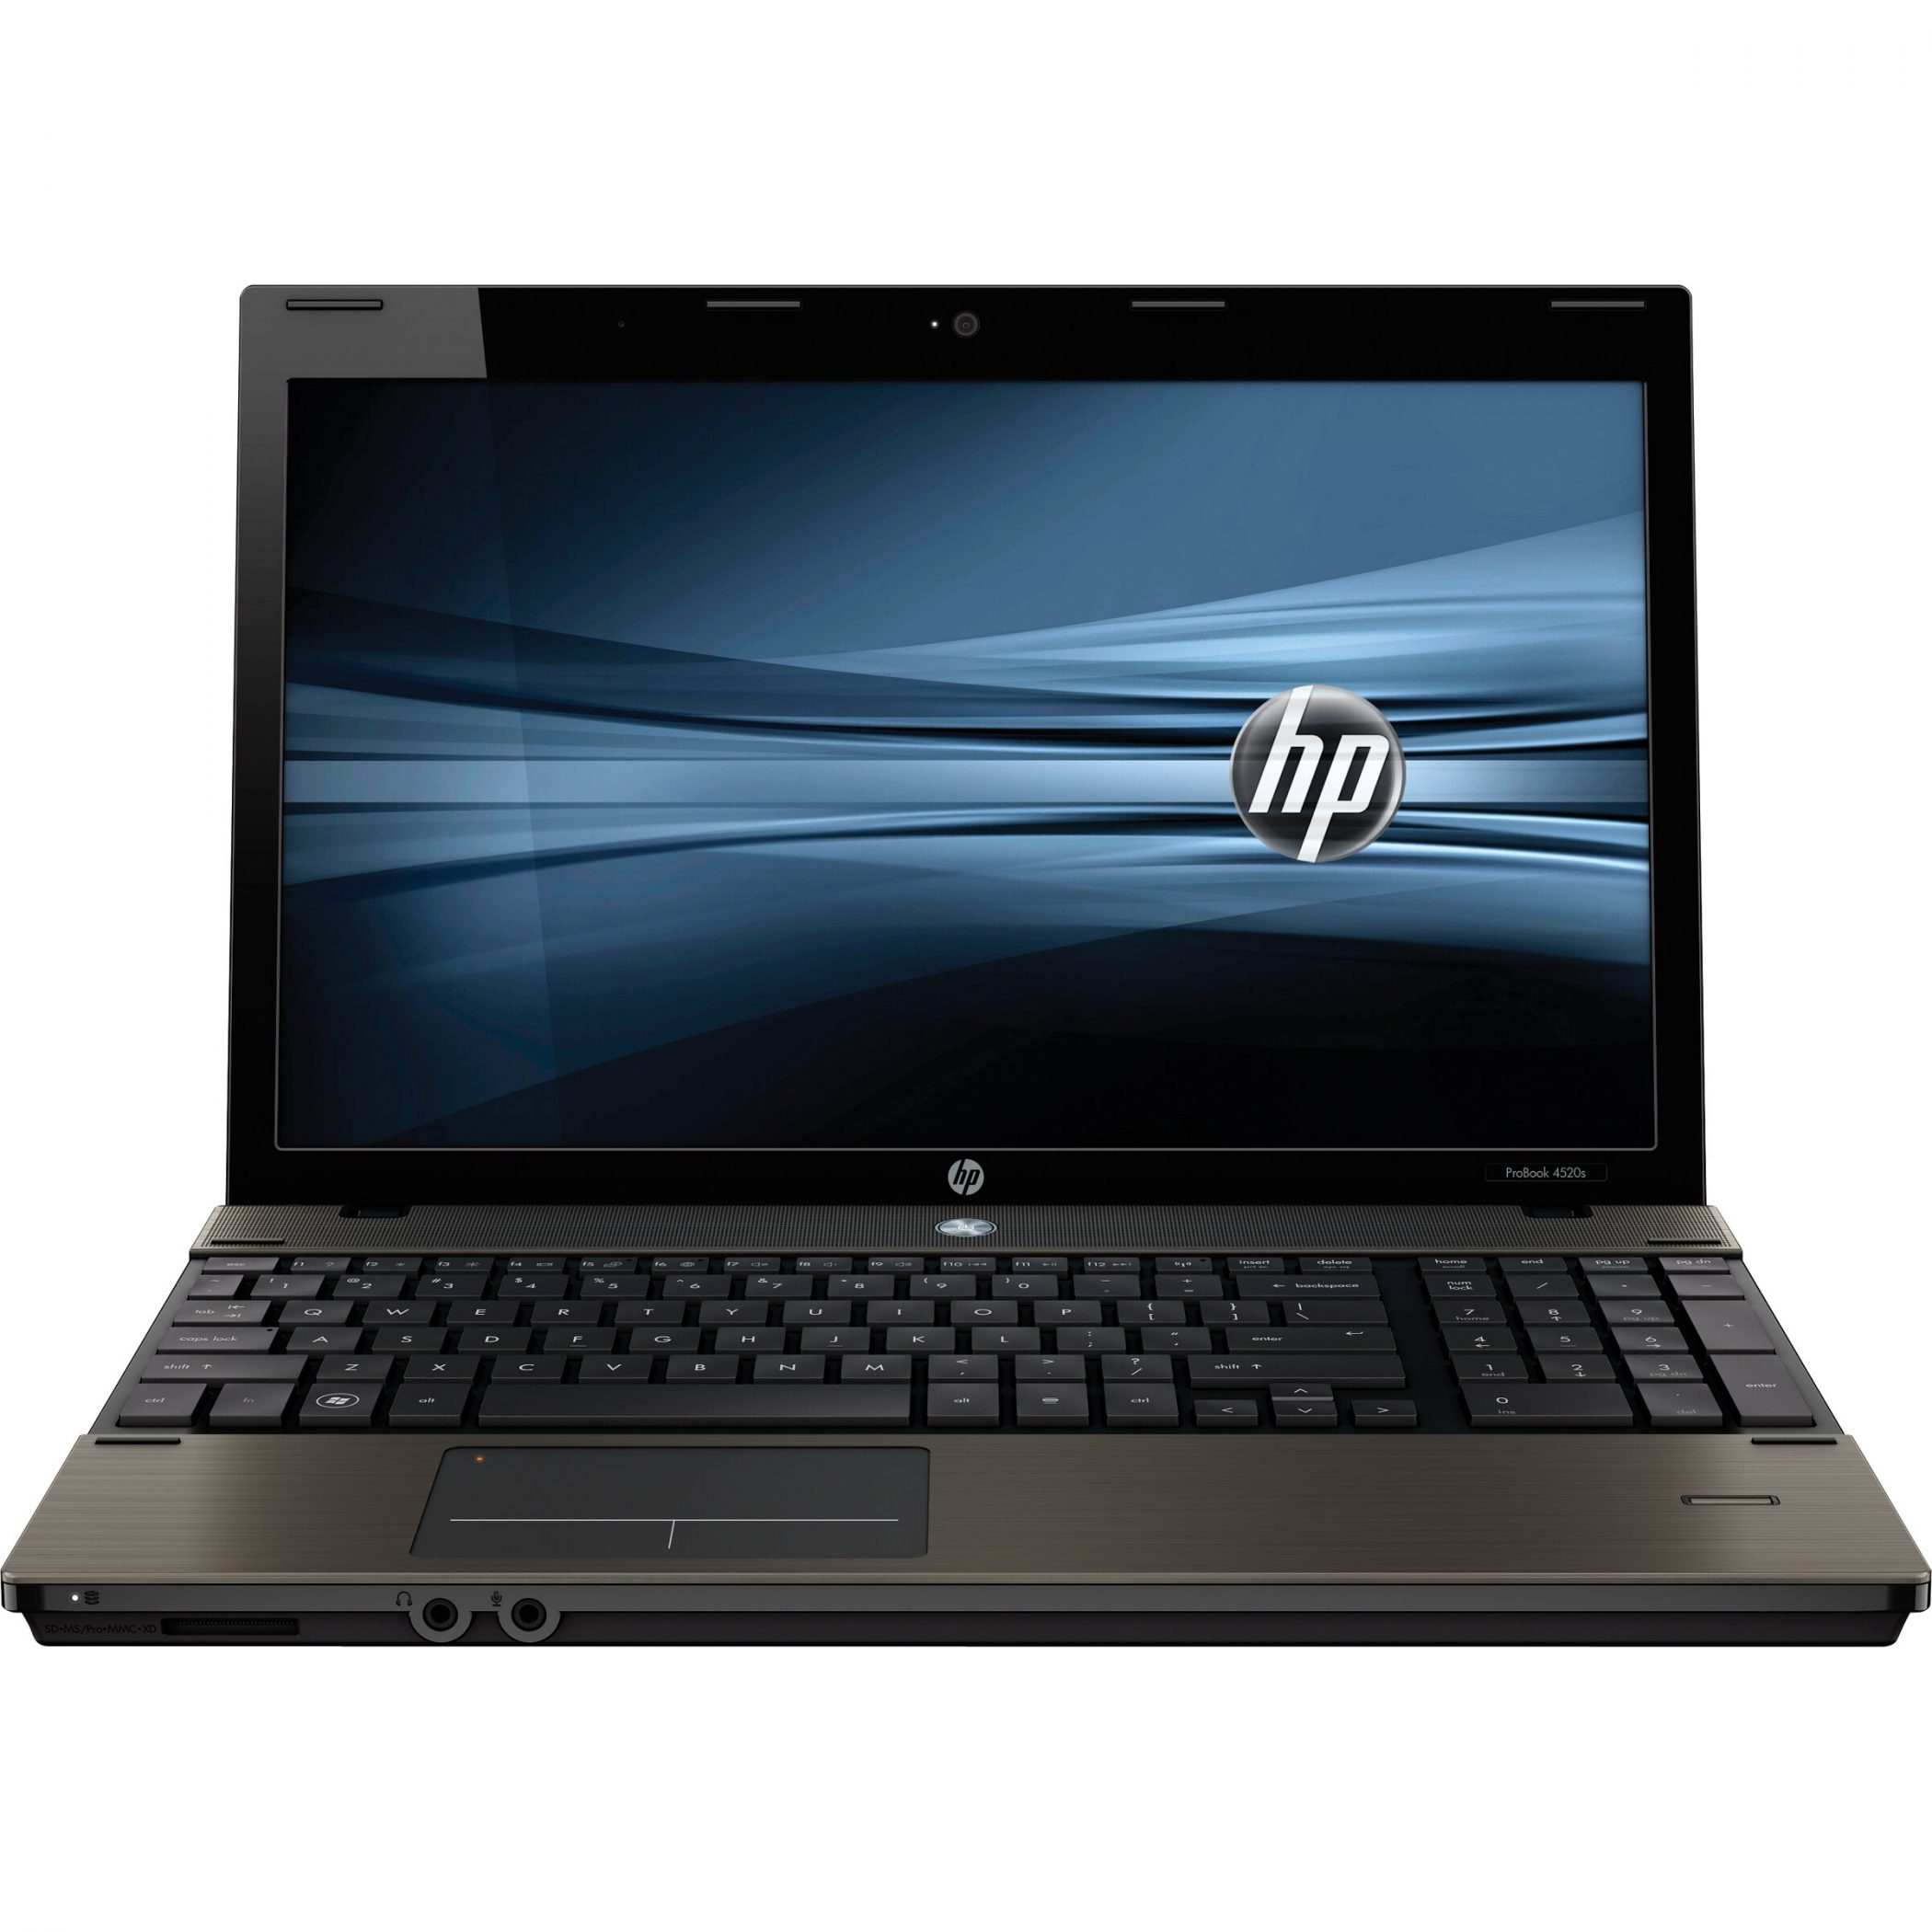 لپ تاپ اچ پی HP 4520 |CPU i3|RAM 4GB|HDD 320|Intel HD Graphic